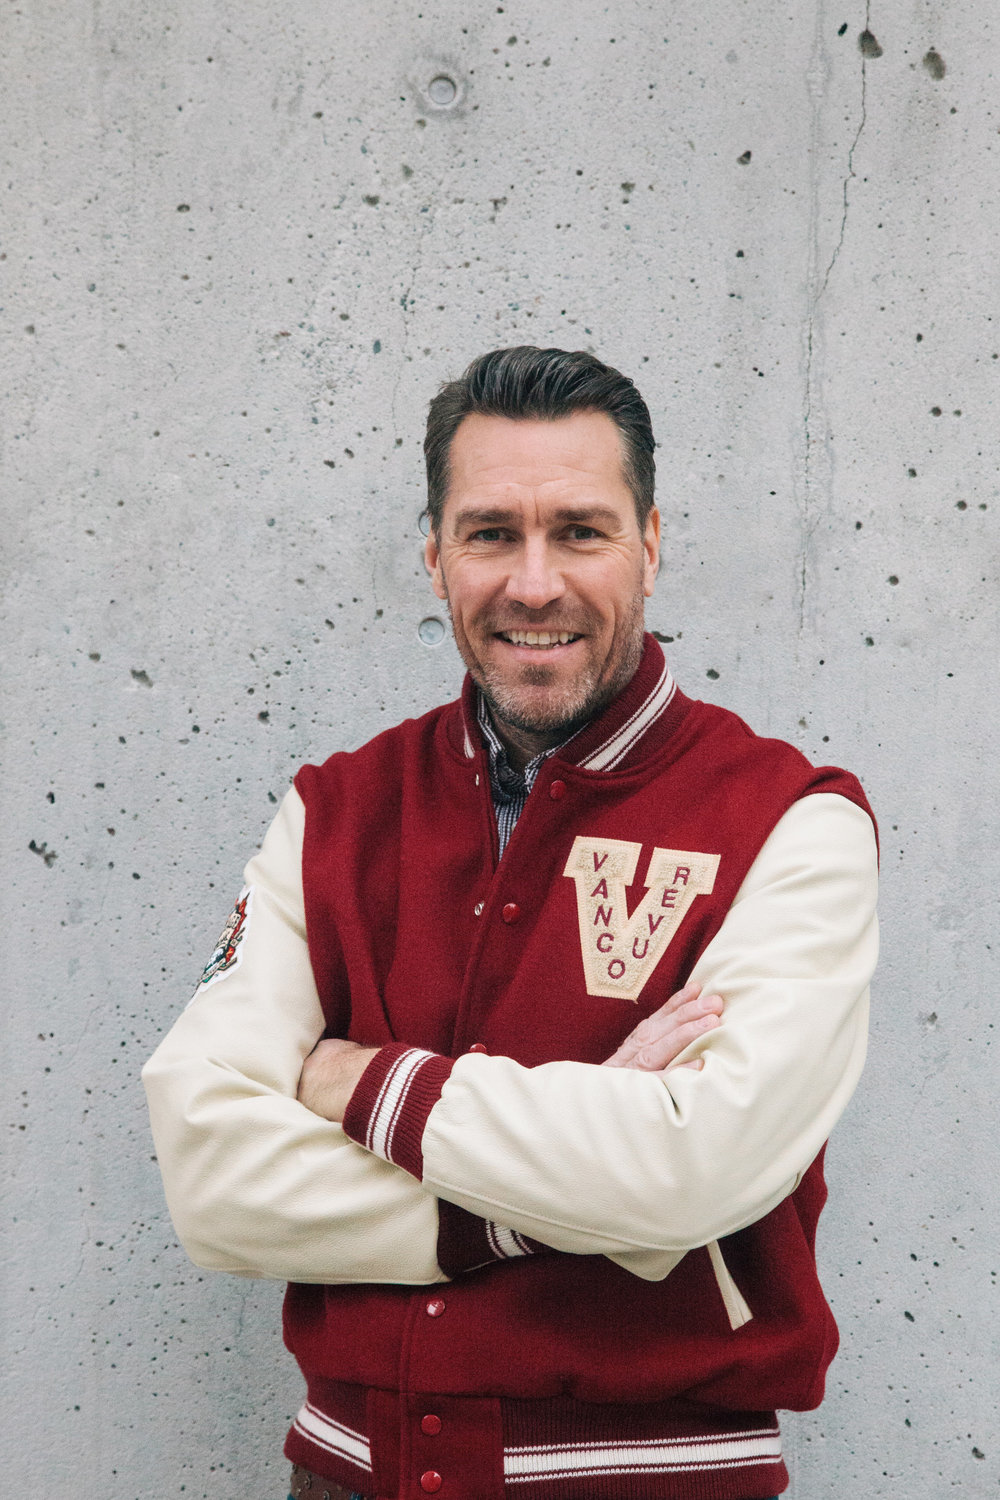 Vancouver Is Awesome has finally launched the Most Awesome Awards, so I can share some photos with you from what I was working on.  Here is Kirk McLean, former goalie for the Canucks,  who was honoured in THIS POST.    Click here to see more of the winners!